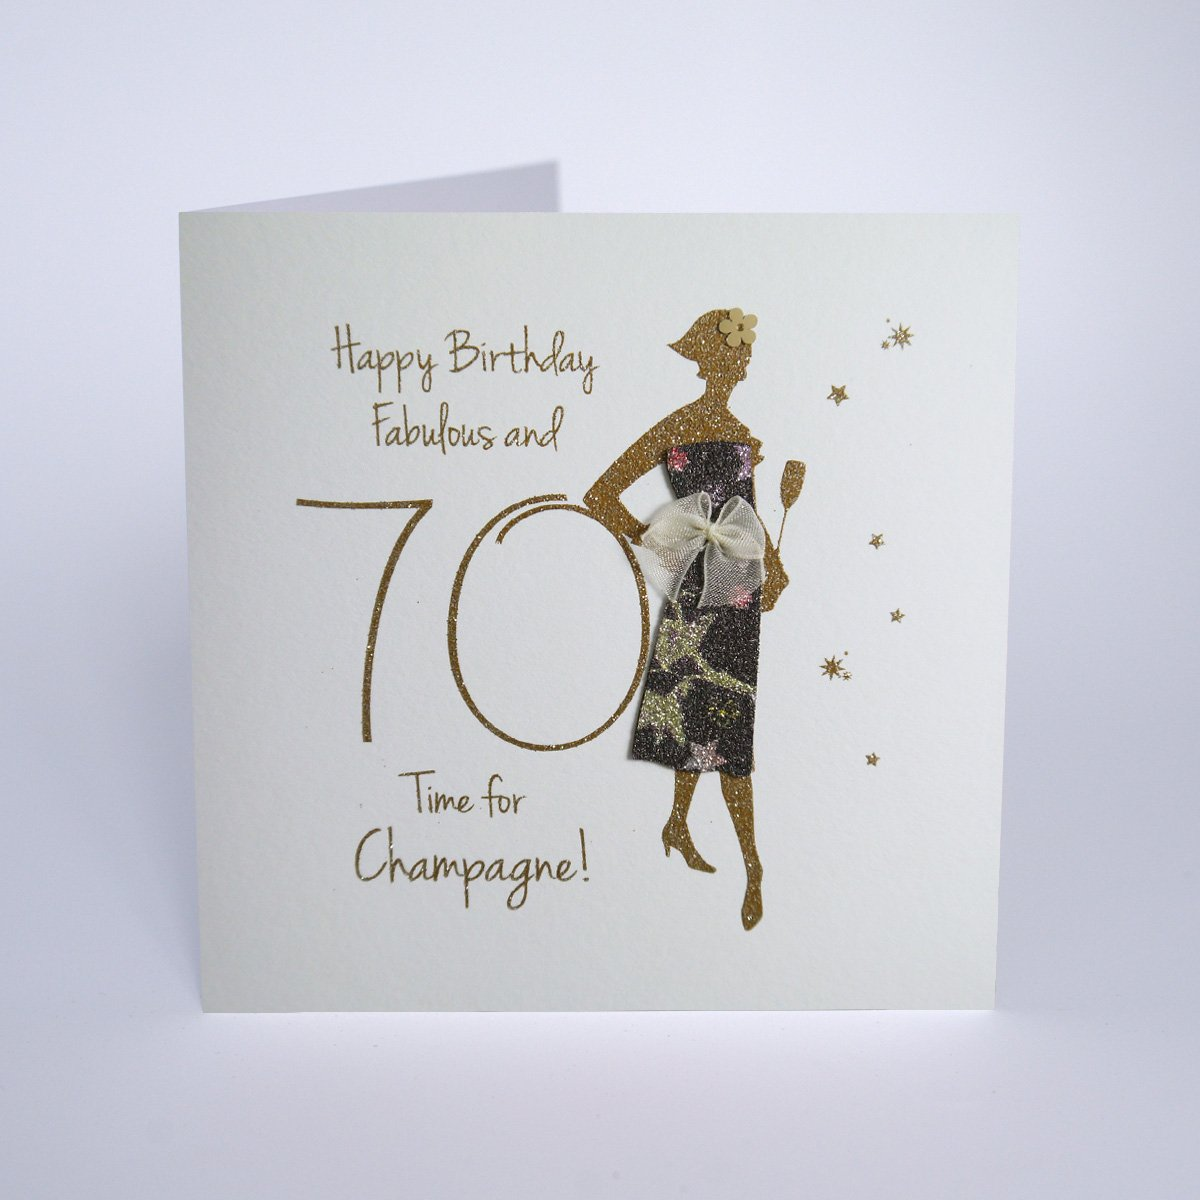 Happy Birthday Fabulous At 70 Time For Champagne Five Dollar Shake Cliftons